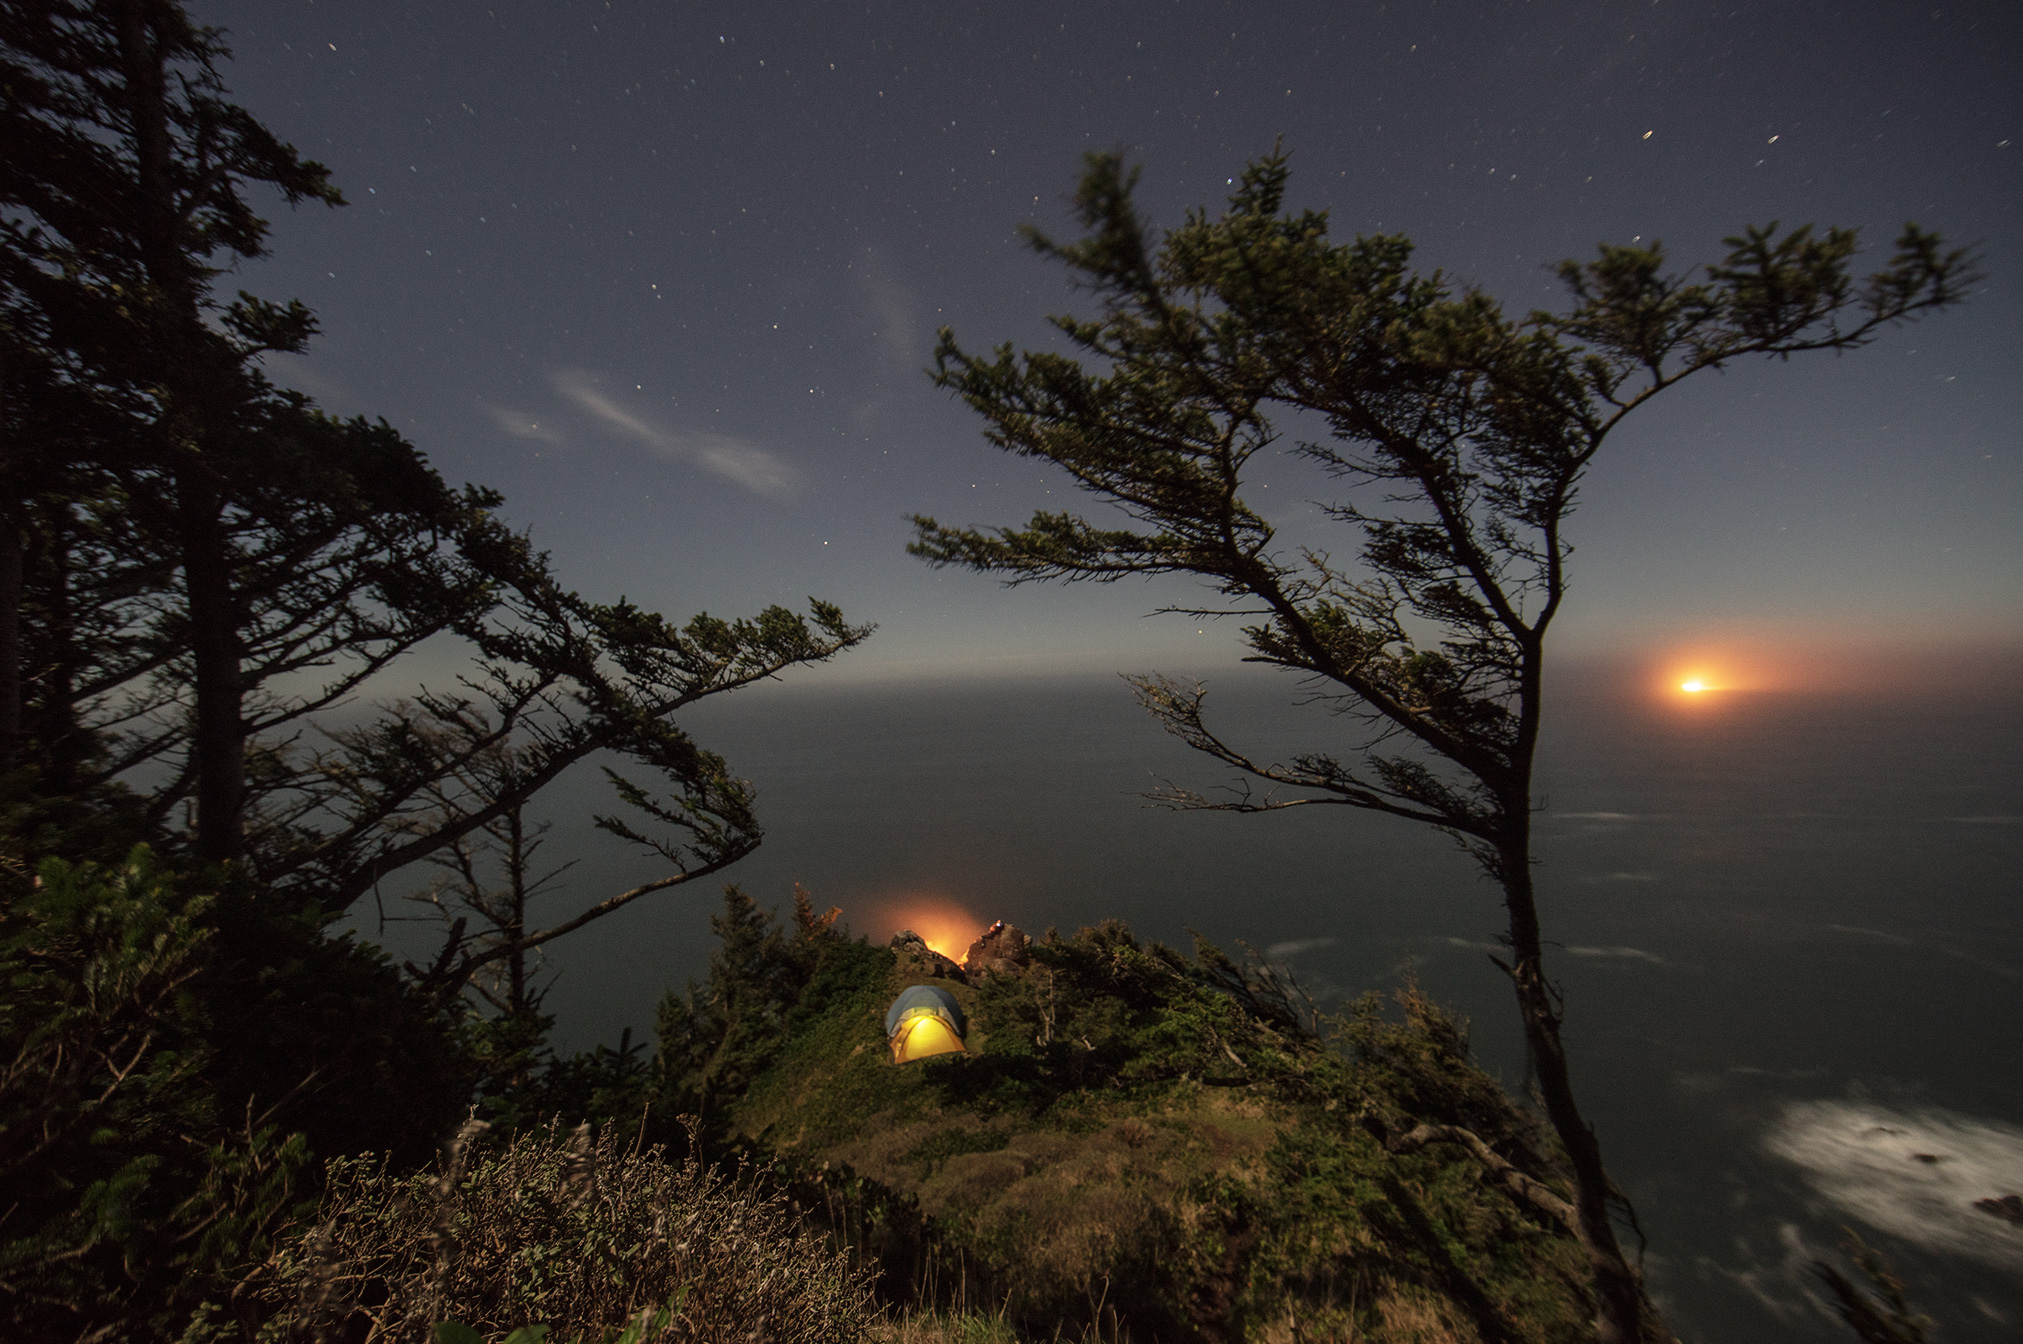 Night camping on the coast